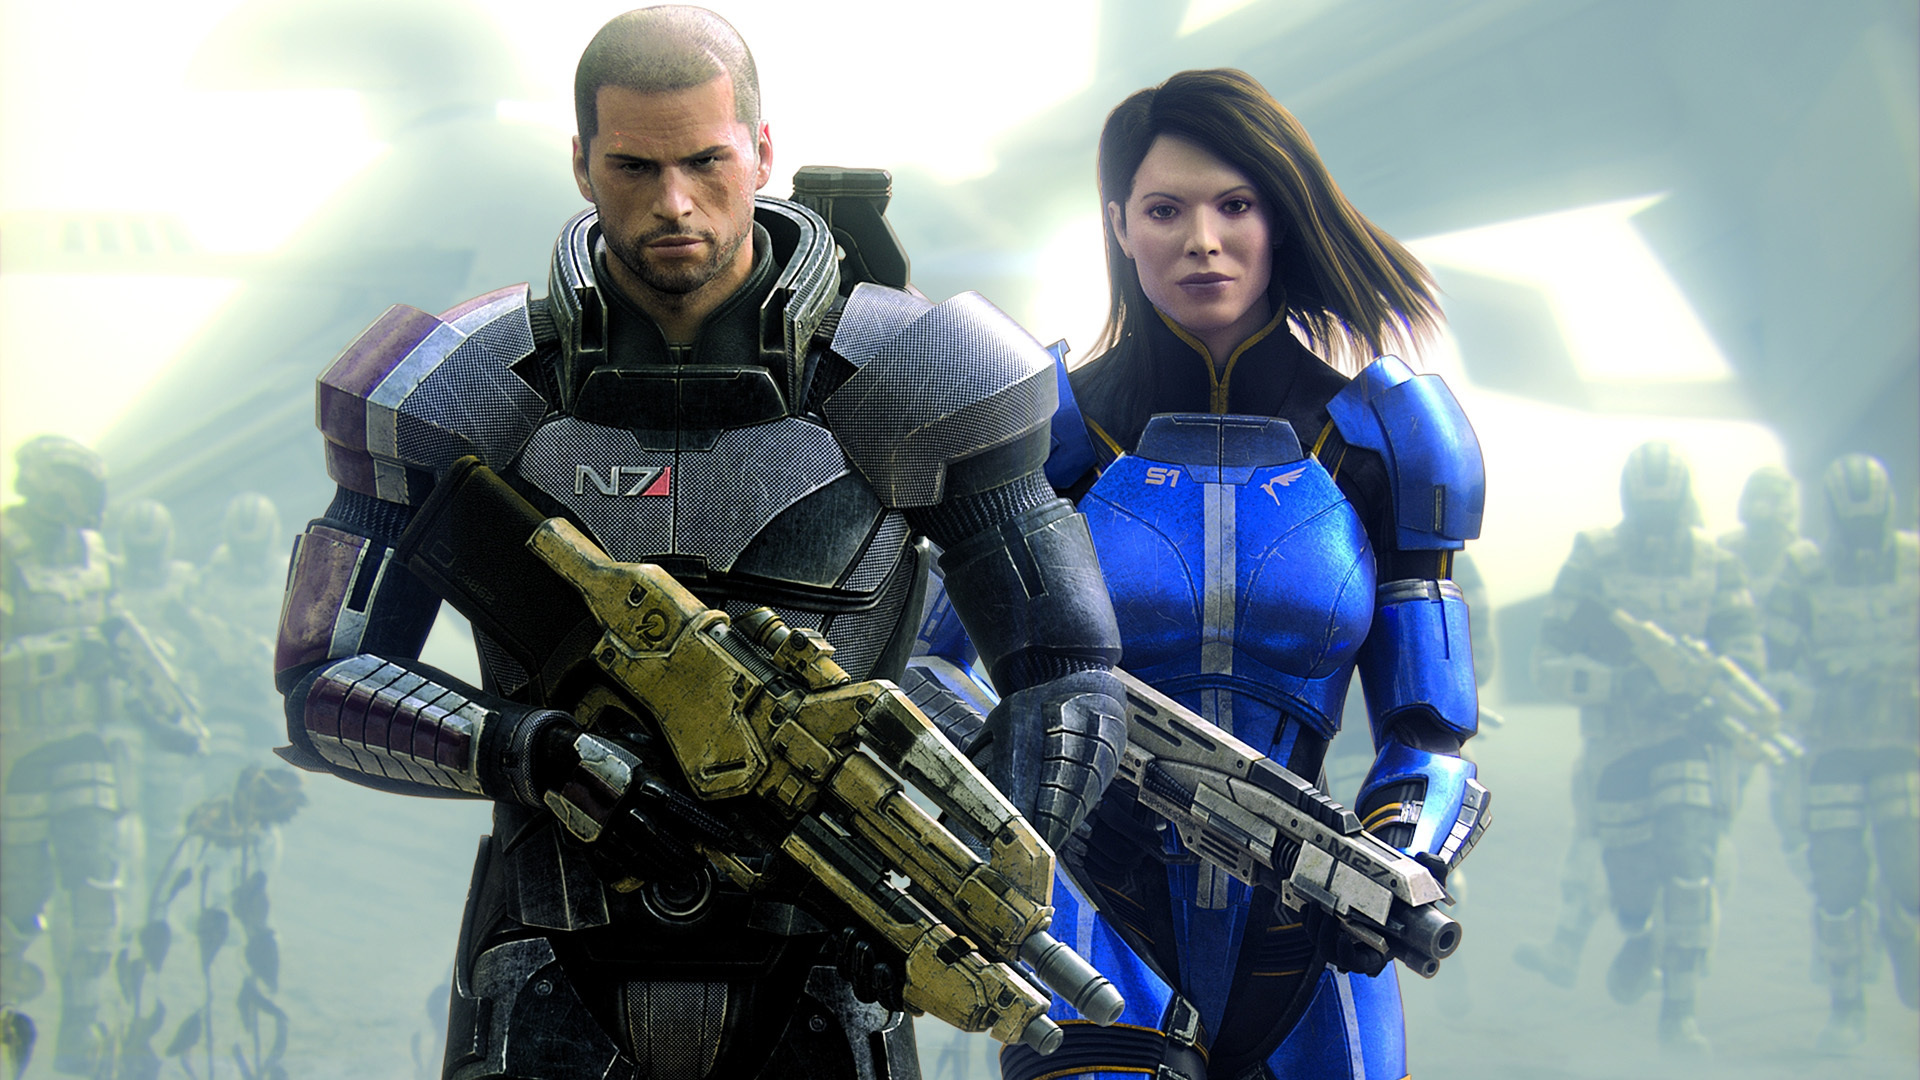 Mass Effect 3 Wallpapers Pictures Images